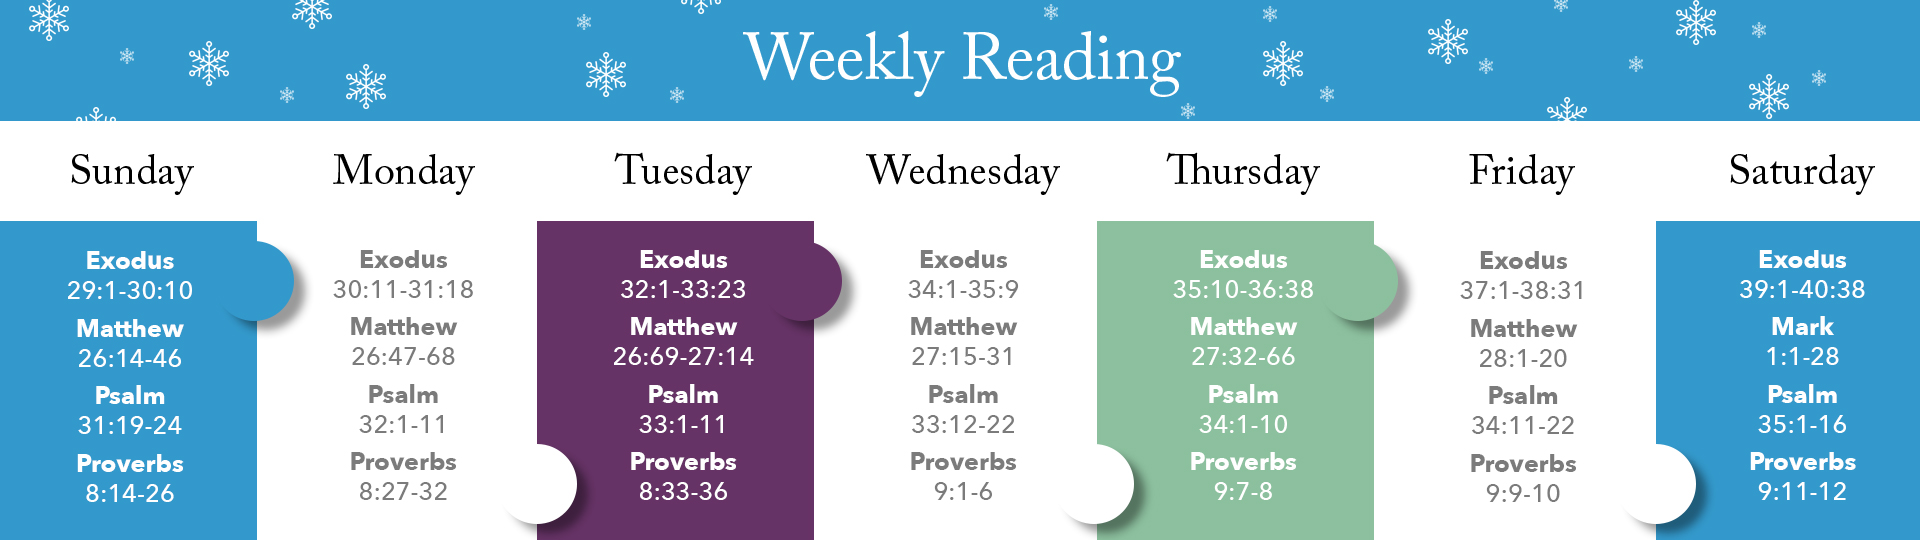 Weekly-Reading-Winter-Look-Recovered0209